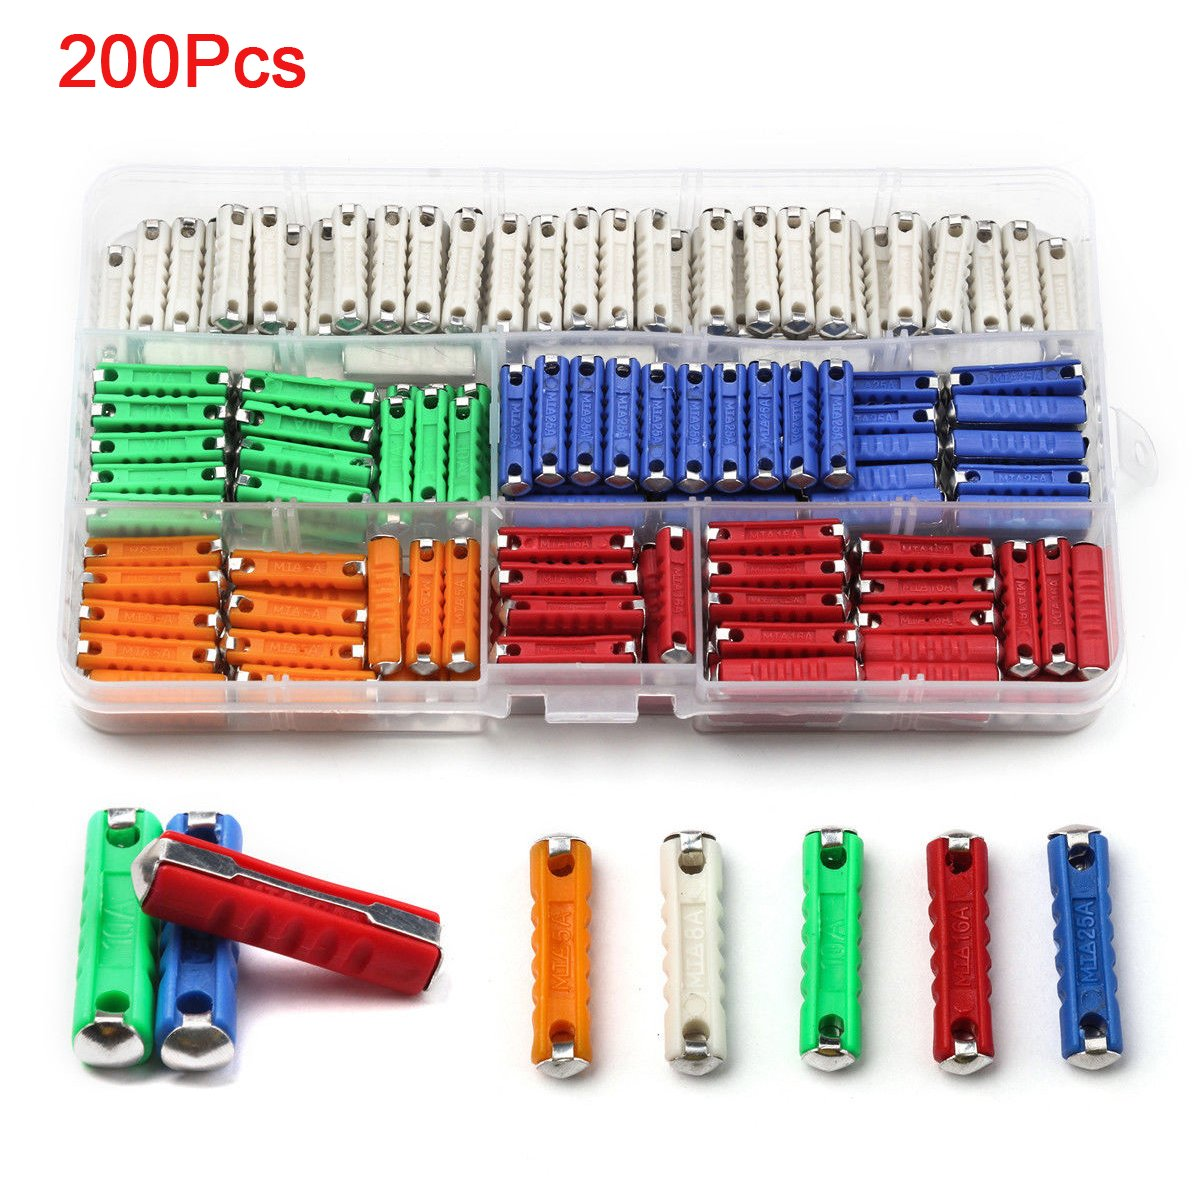 Amazon.com: Karcy 200 Pcs Continental Car Fuses Torpedo Type Sets For  Vintage Classic Cars Old Style: Automotive